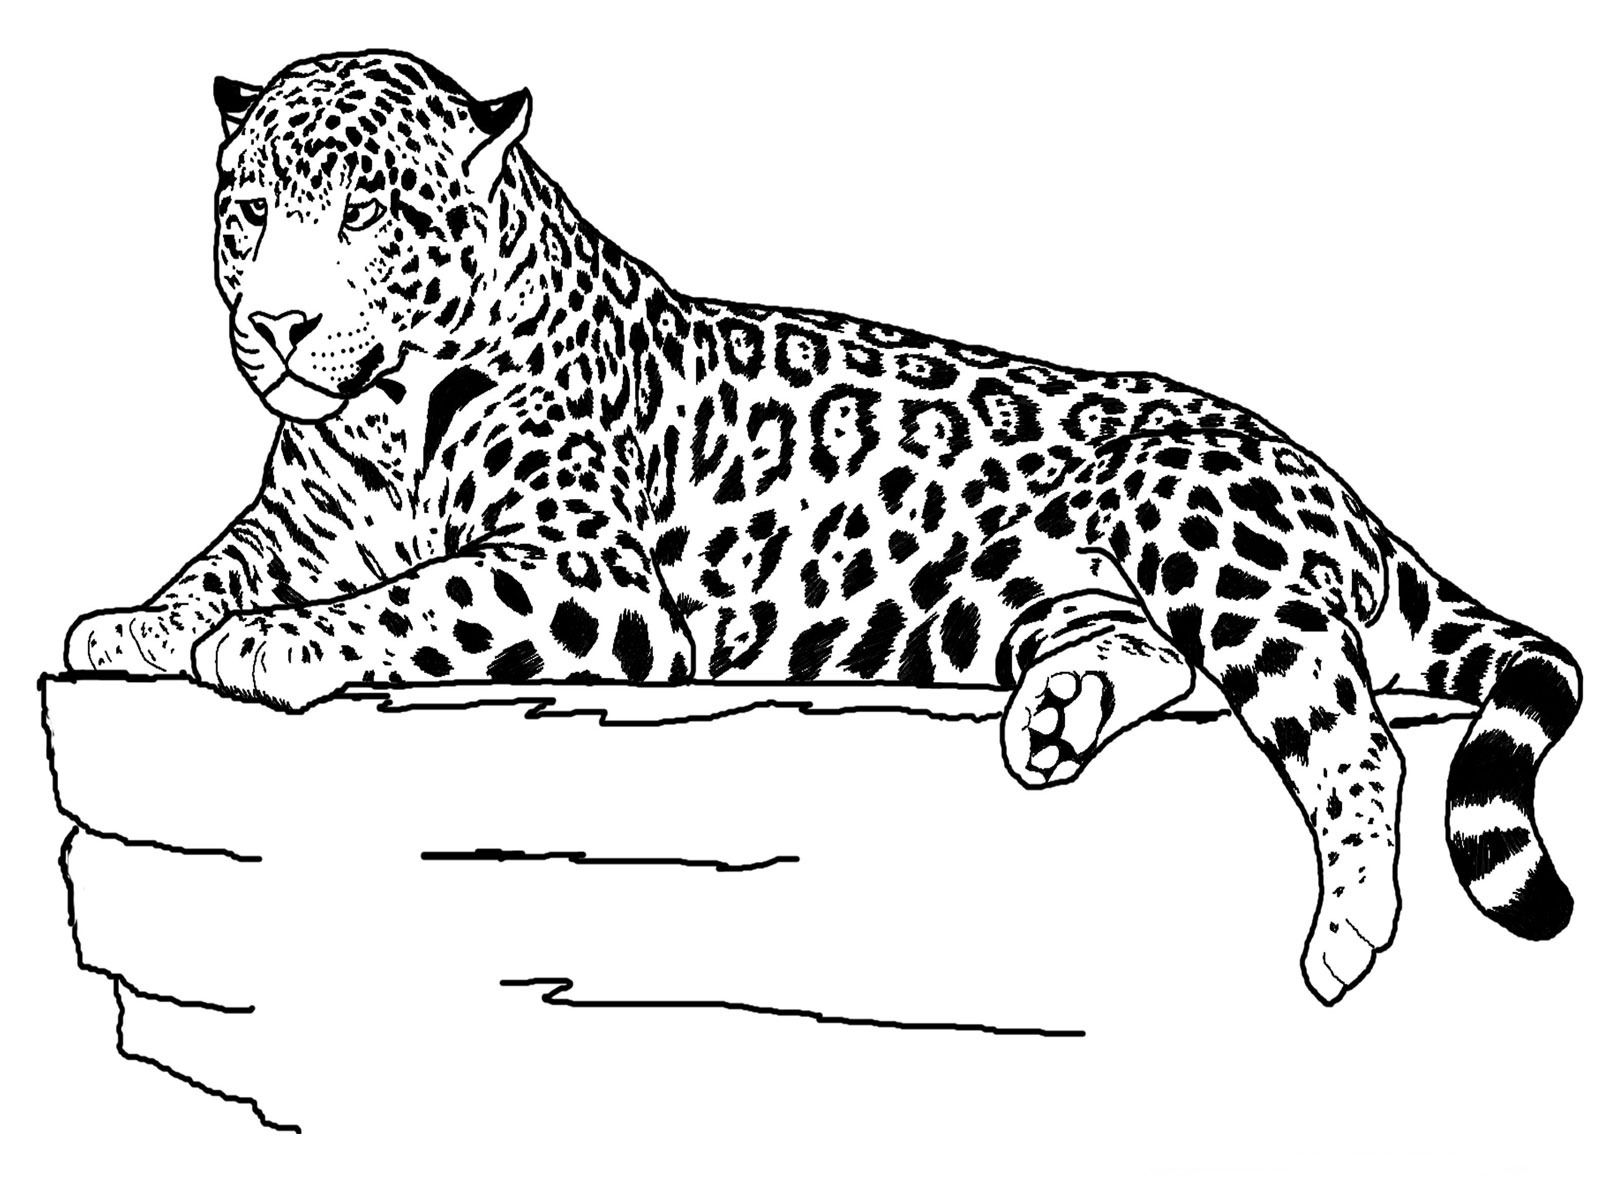 Free coloring pages leopard - Realistic Animals Coloring Pages Printable Coloring Pages Sheets For Kids Get The Latest Free Realistic Animals Coloring Pages Images Favorite Coloring